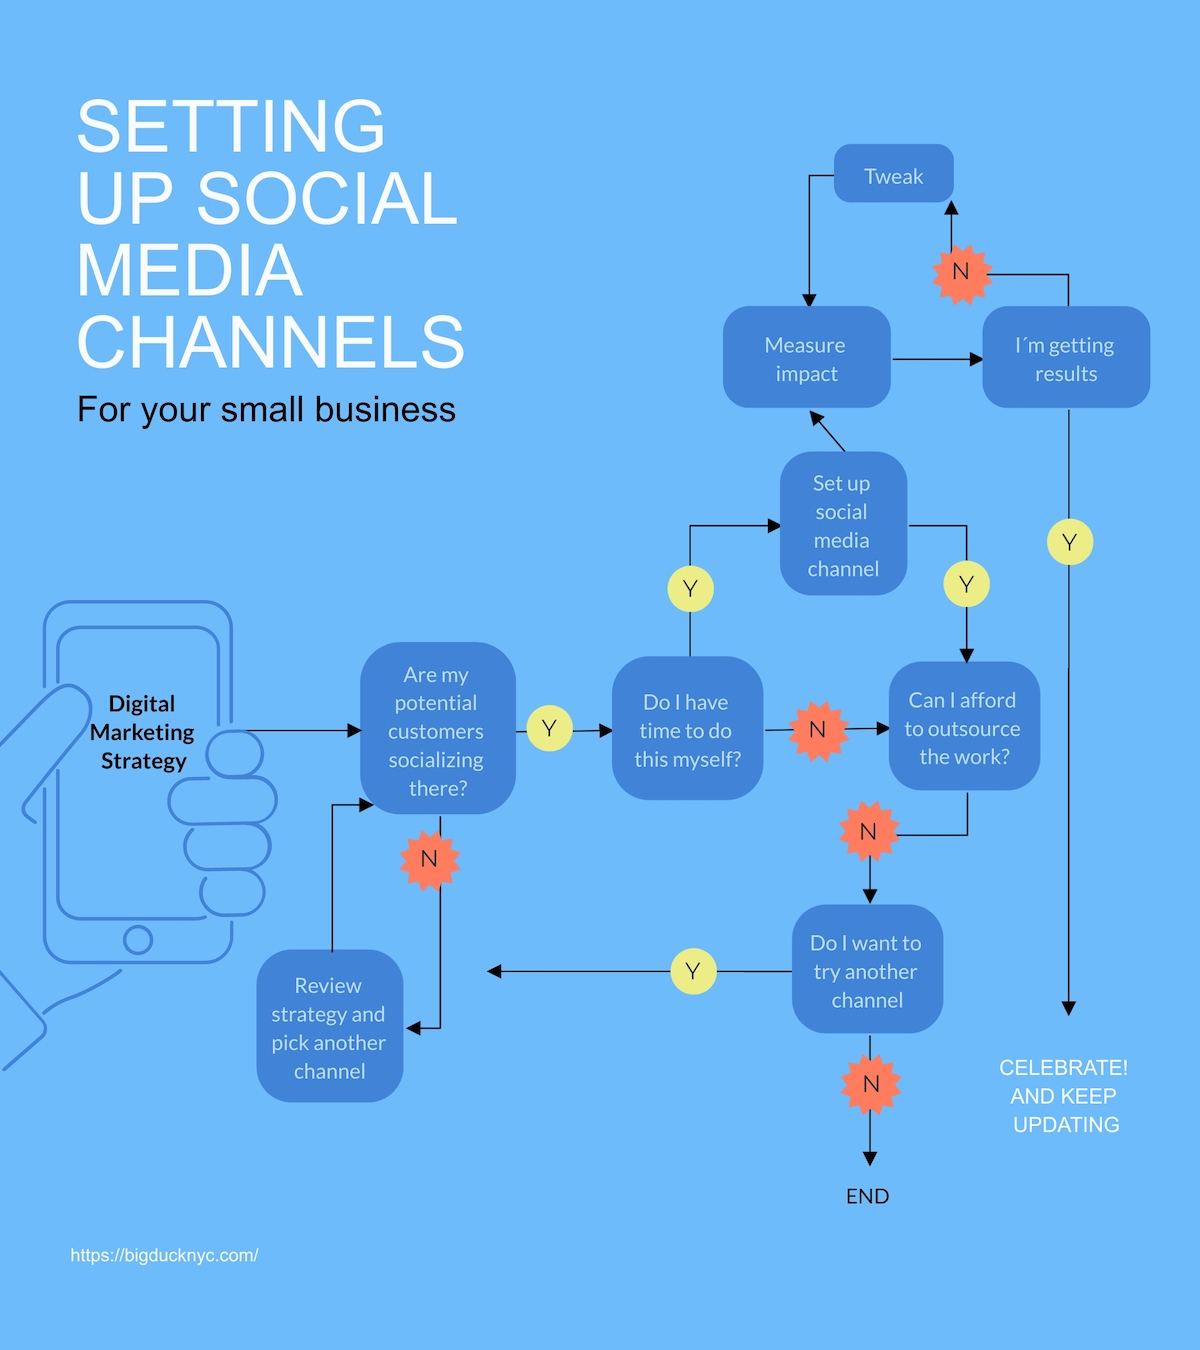 A social media channel flowchart template available in Visme.